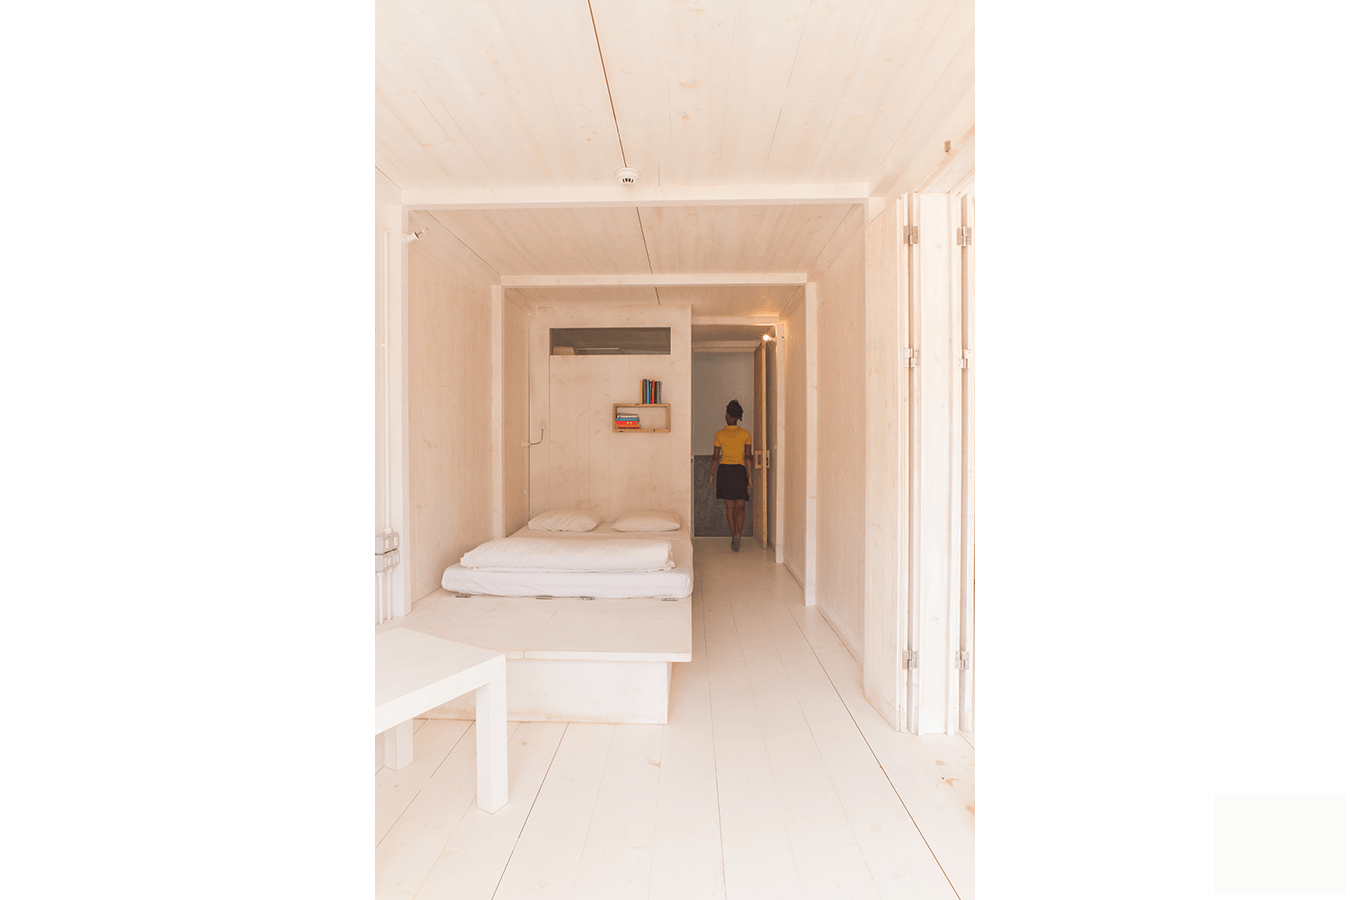 acquiles_eco_hotel_04_Ramos_Castellano_Architects_Room_2.png